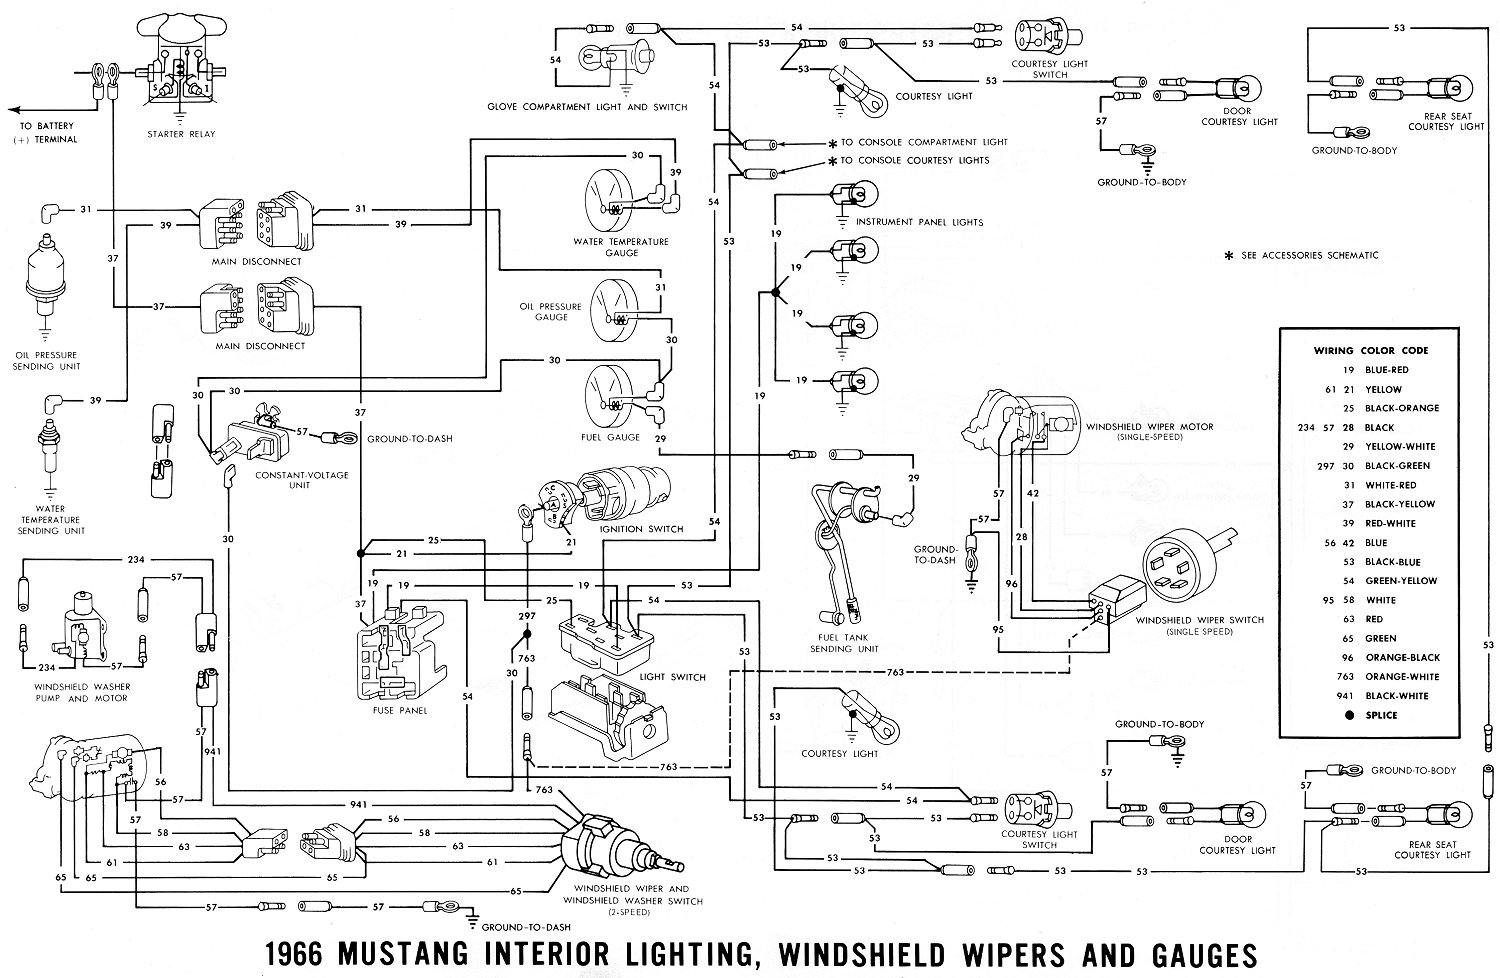 66inter1 66 mustang wiring diagram radio tape 66 mustang turn signal wiring PCM Mustang Football at bayanpartner.co